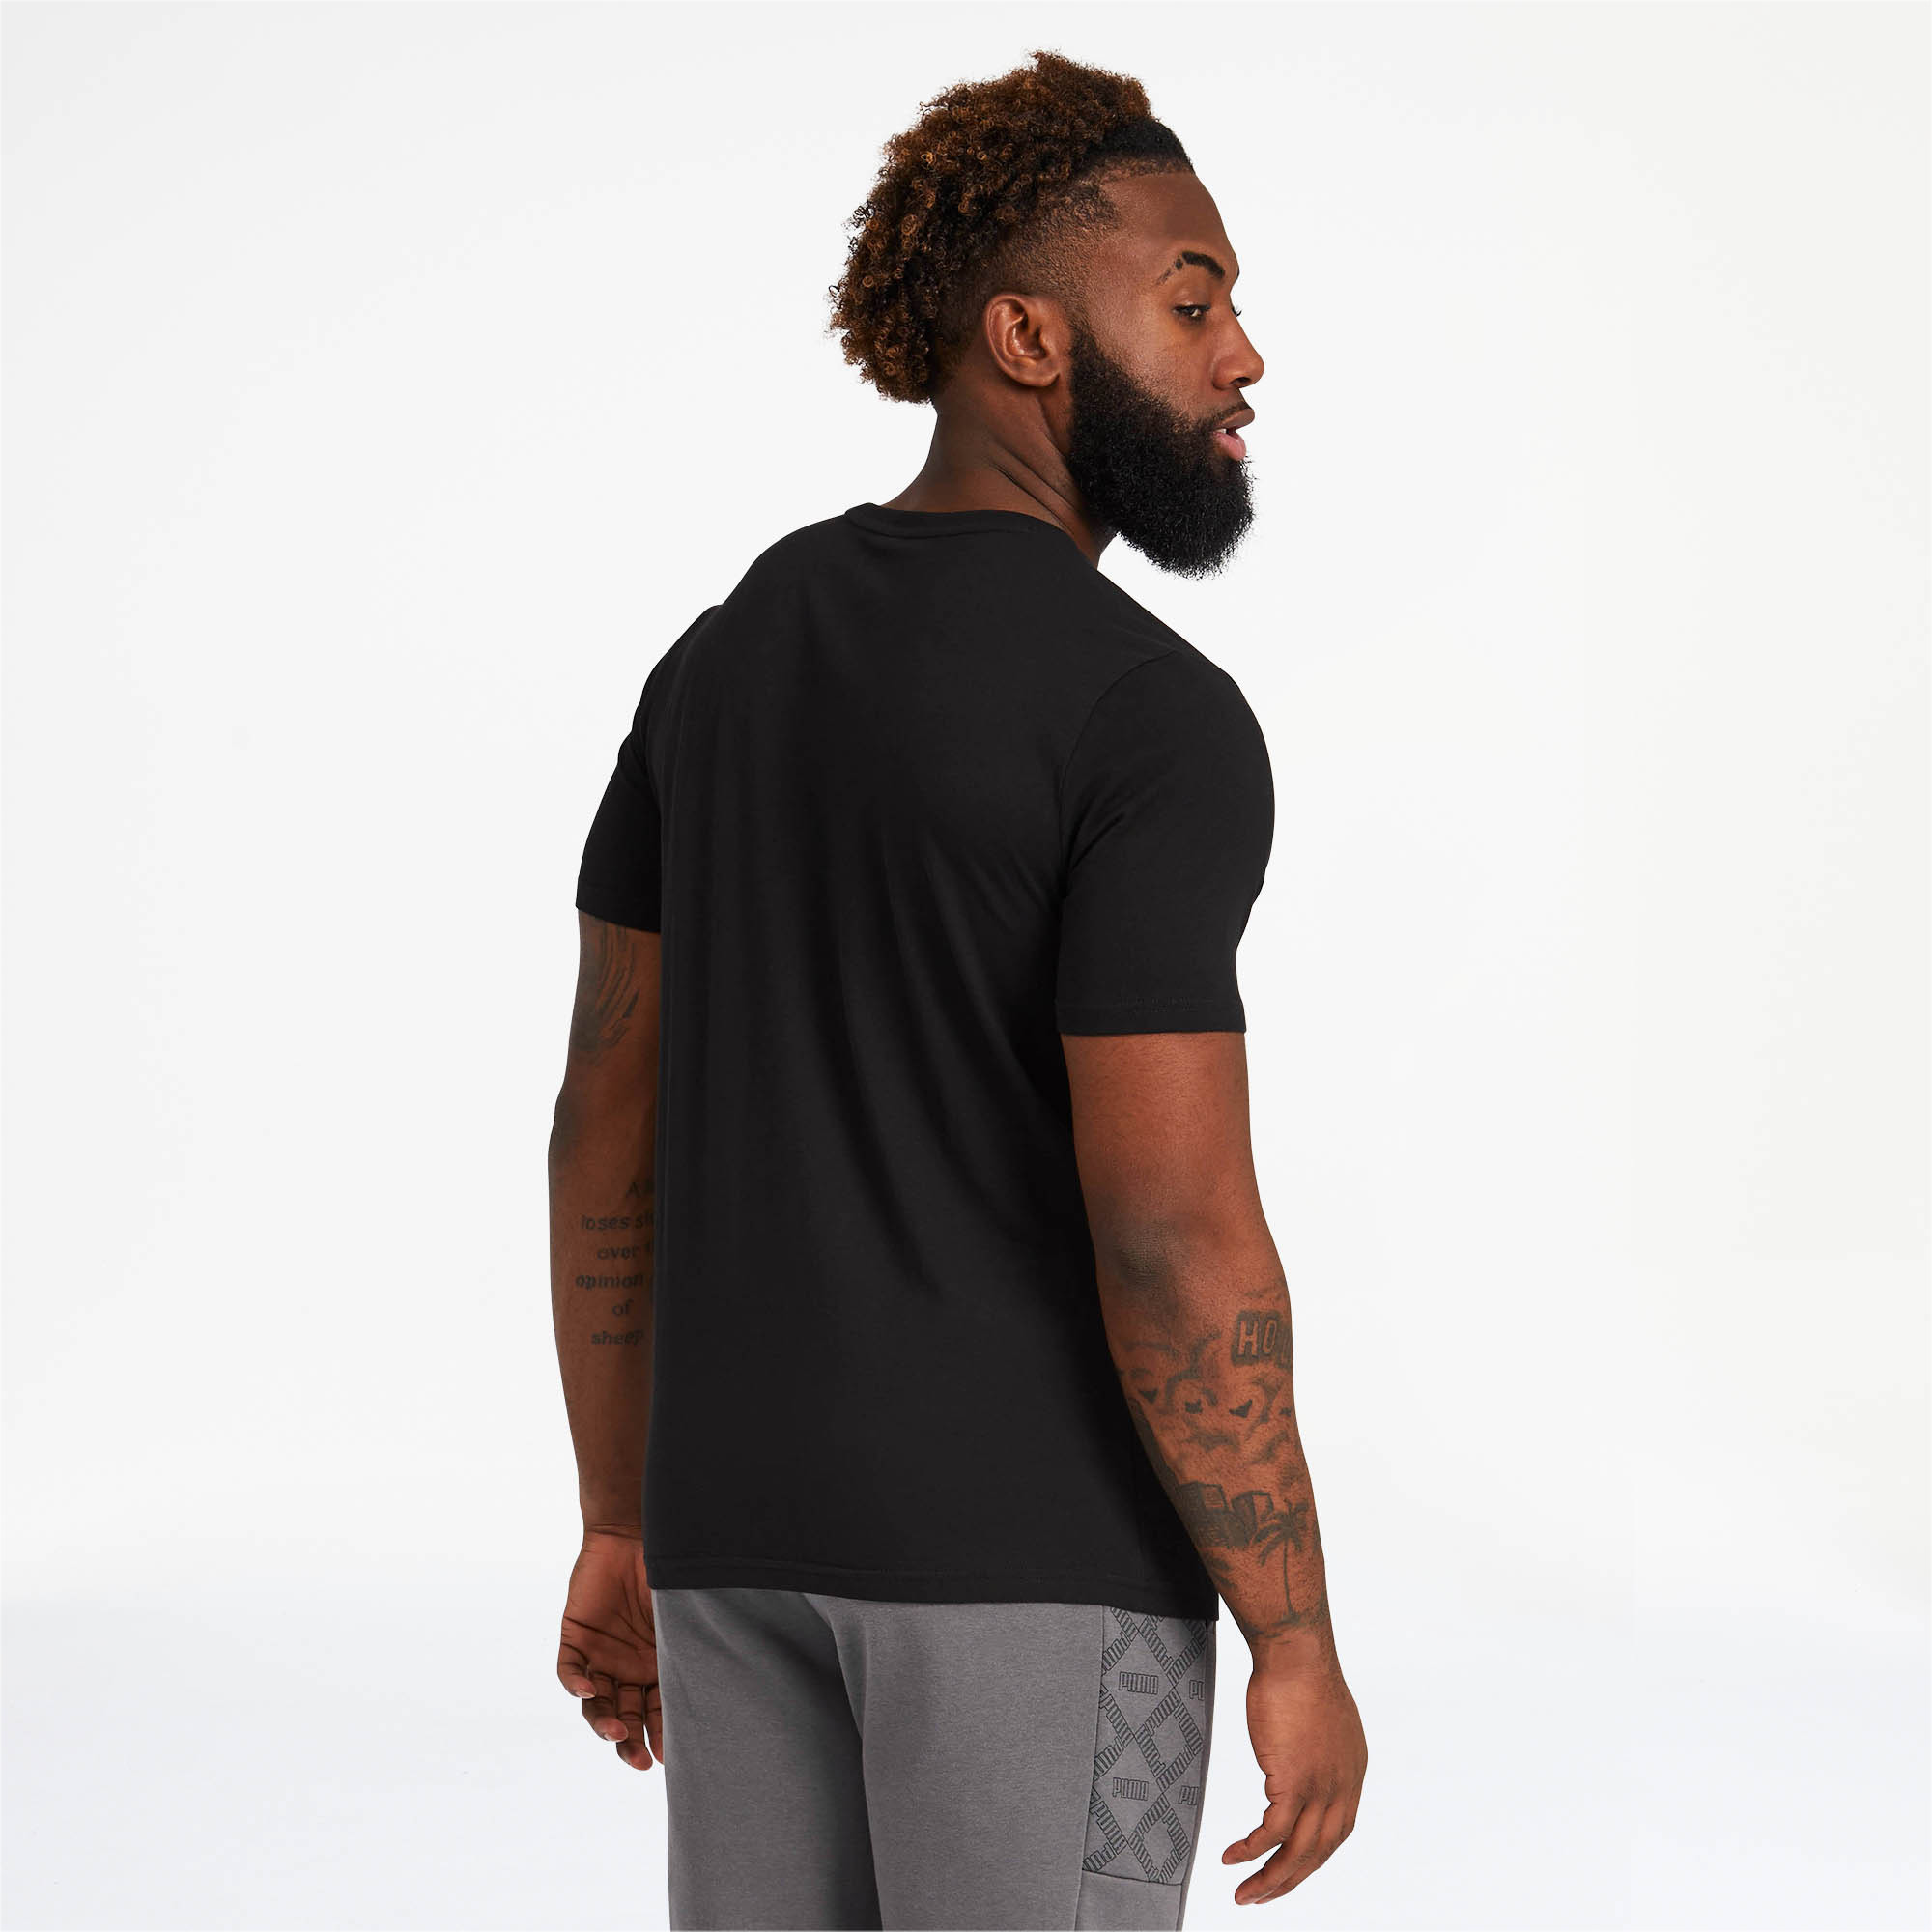 PUMA-Logo-AOP-Pack-Men-039-s-Graphic-Tee-Men-Tee-Basics thumbnail 5